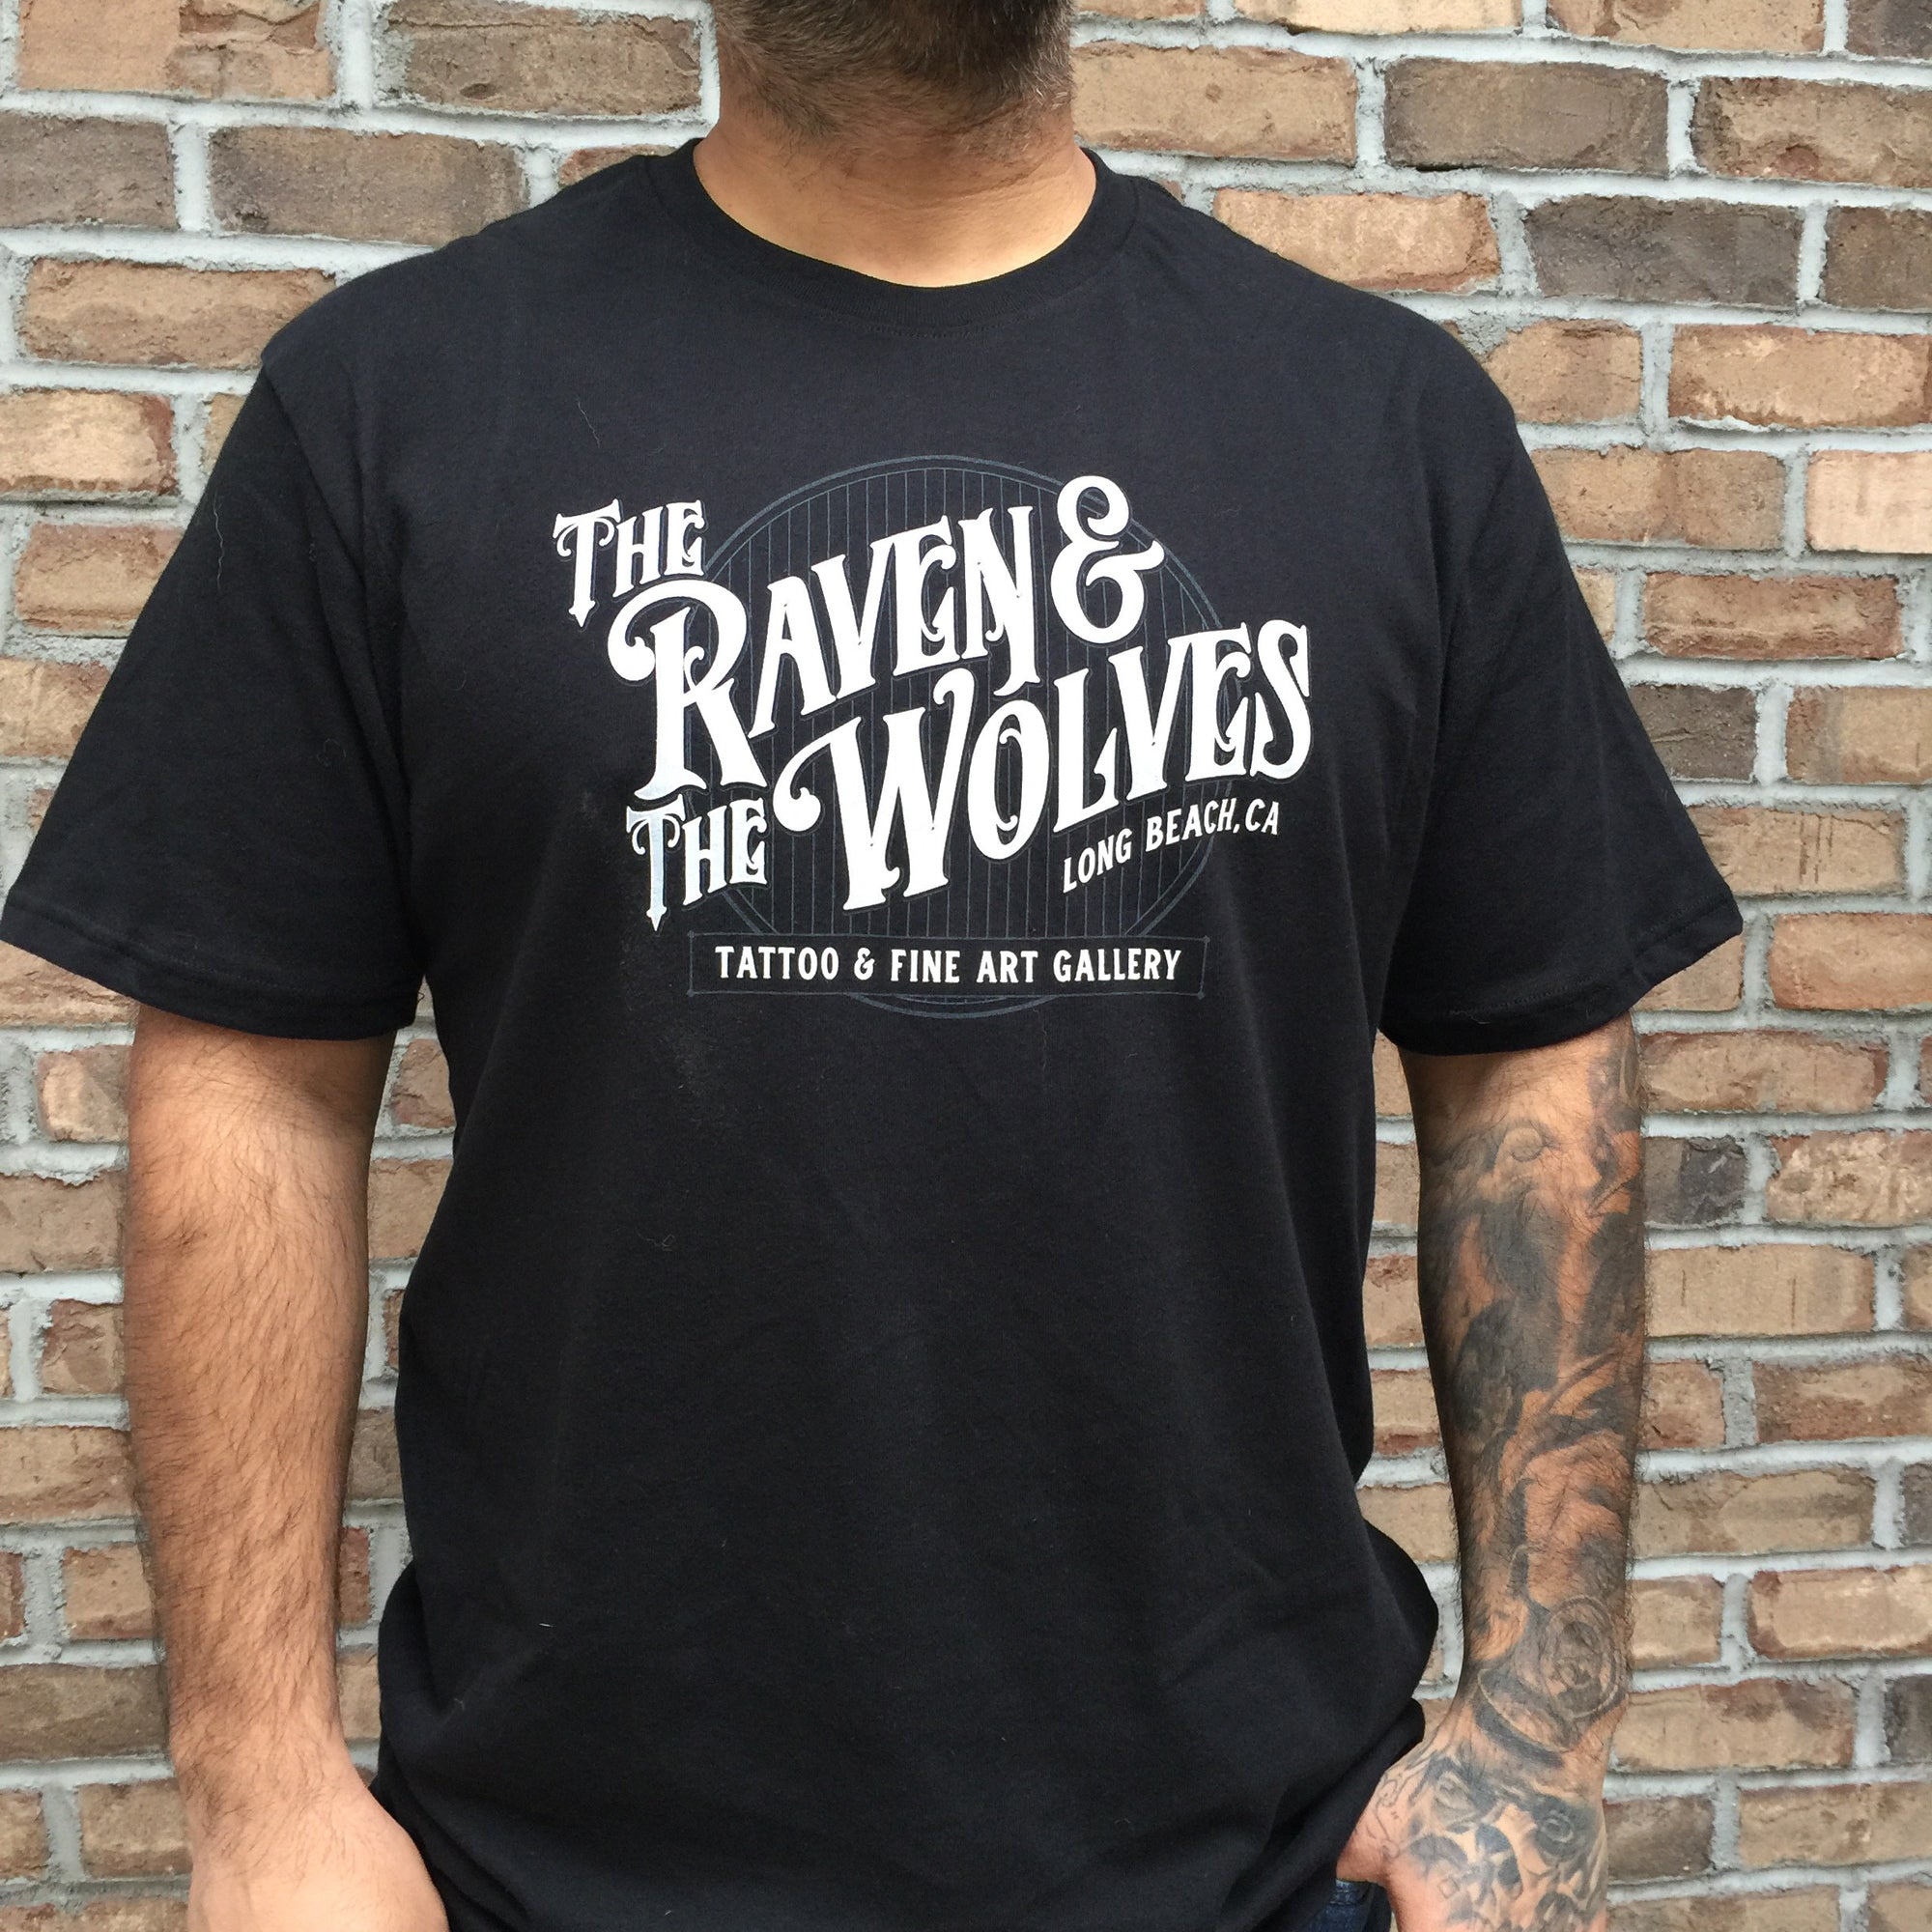 The Raven & The Wolves Shop Tee